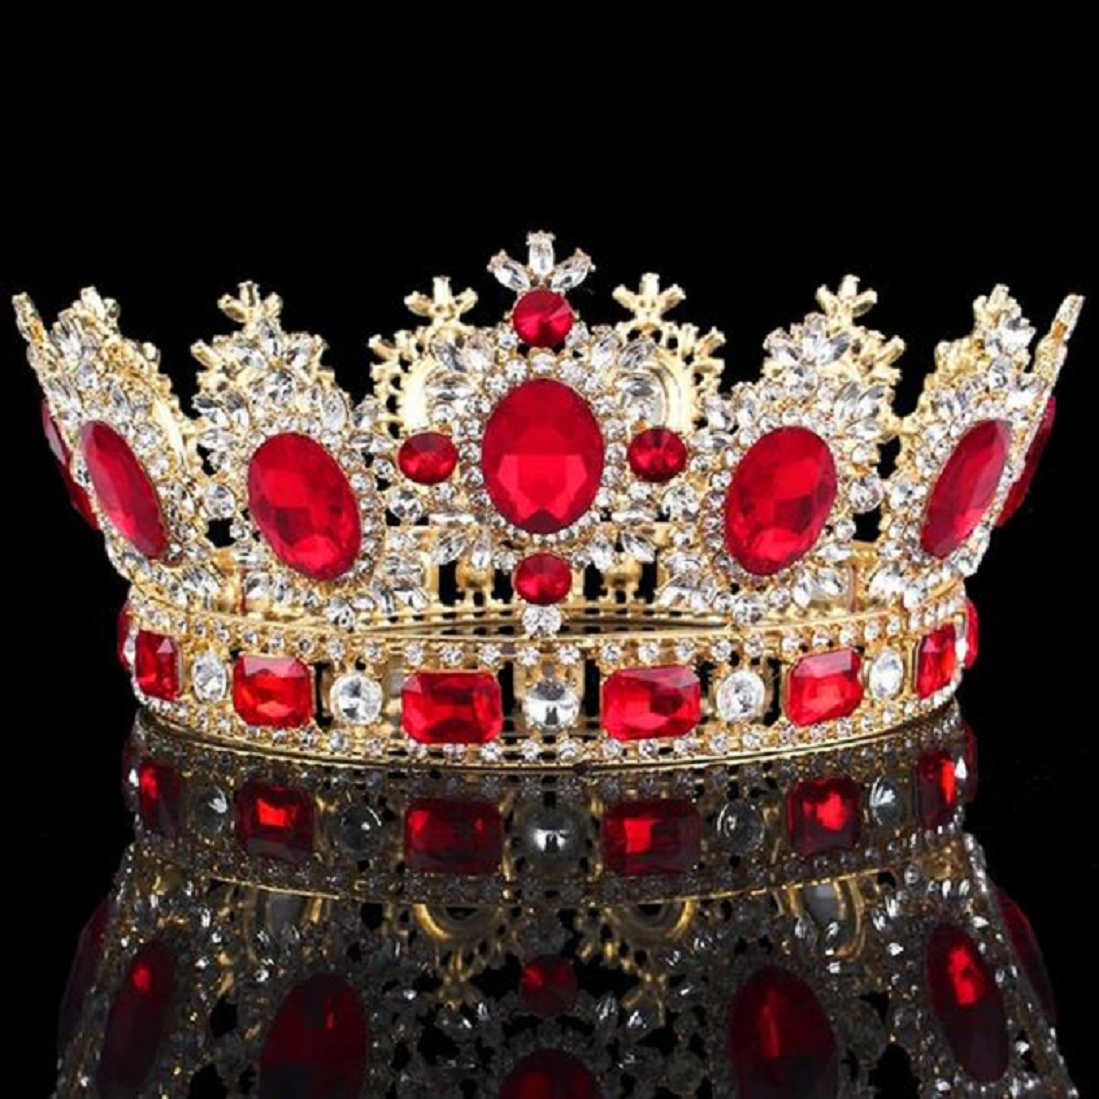 Best Tiara Bling Online: Vintage Royal Crown in Gold with Ruby and Clear Diamonds